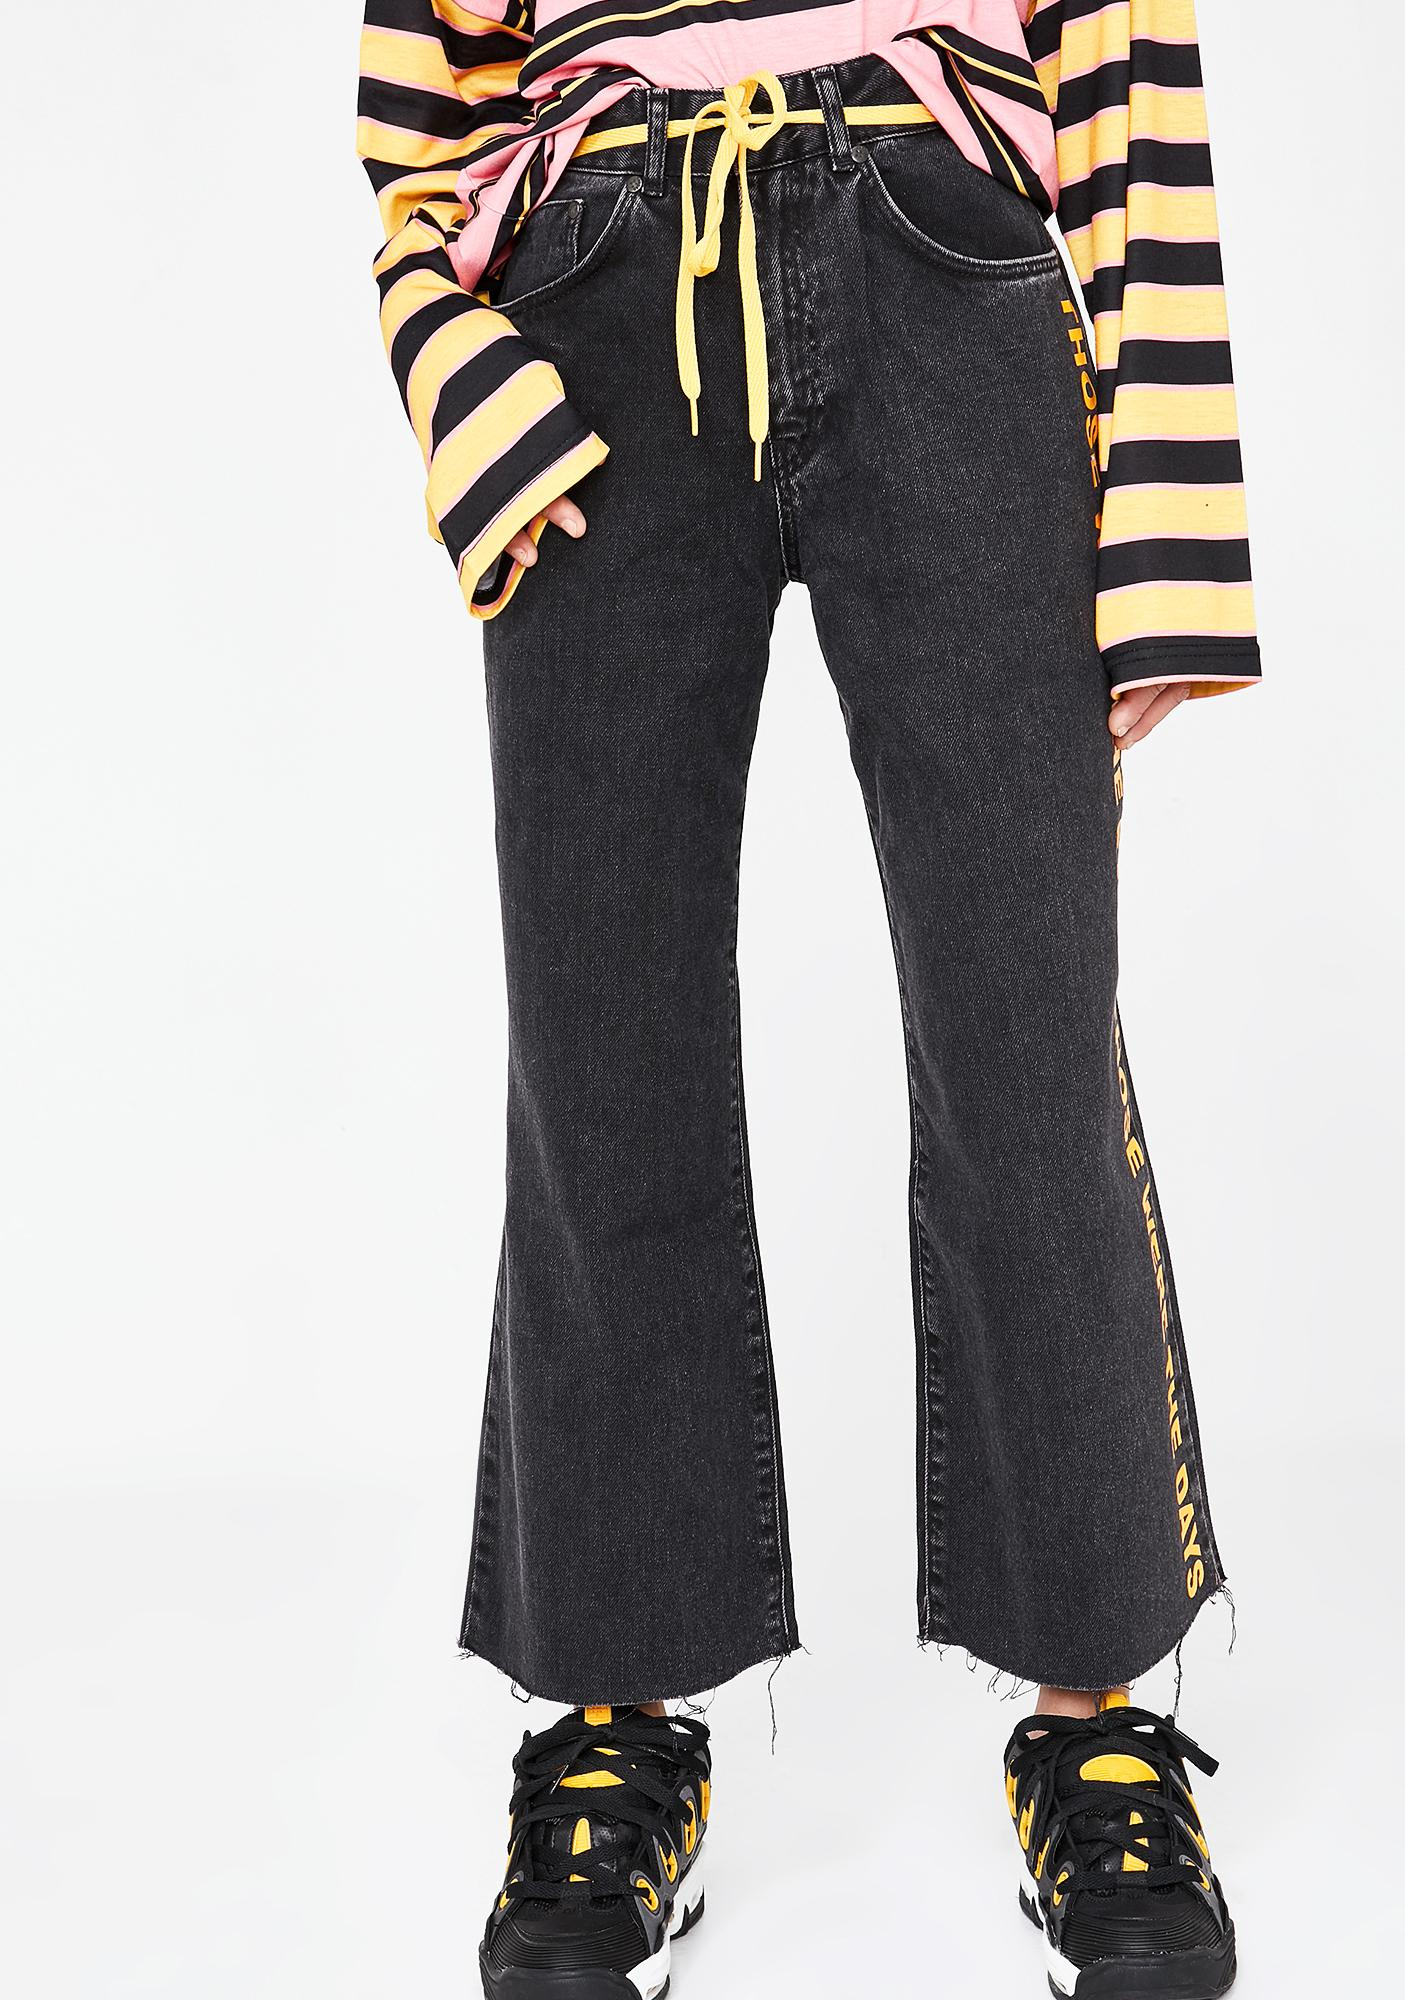 The Ragged Priest Hindsight Jeans